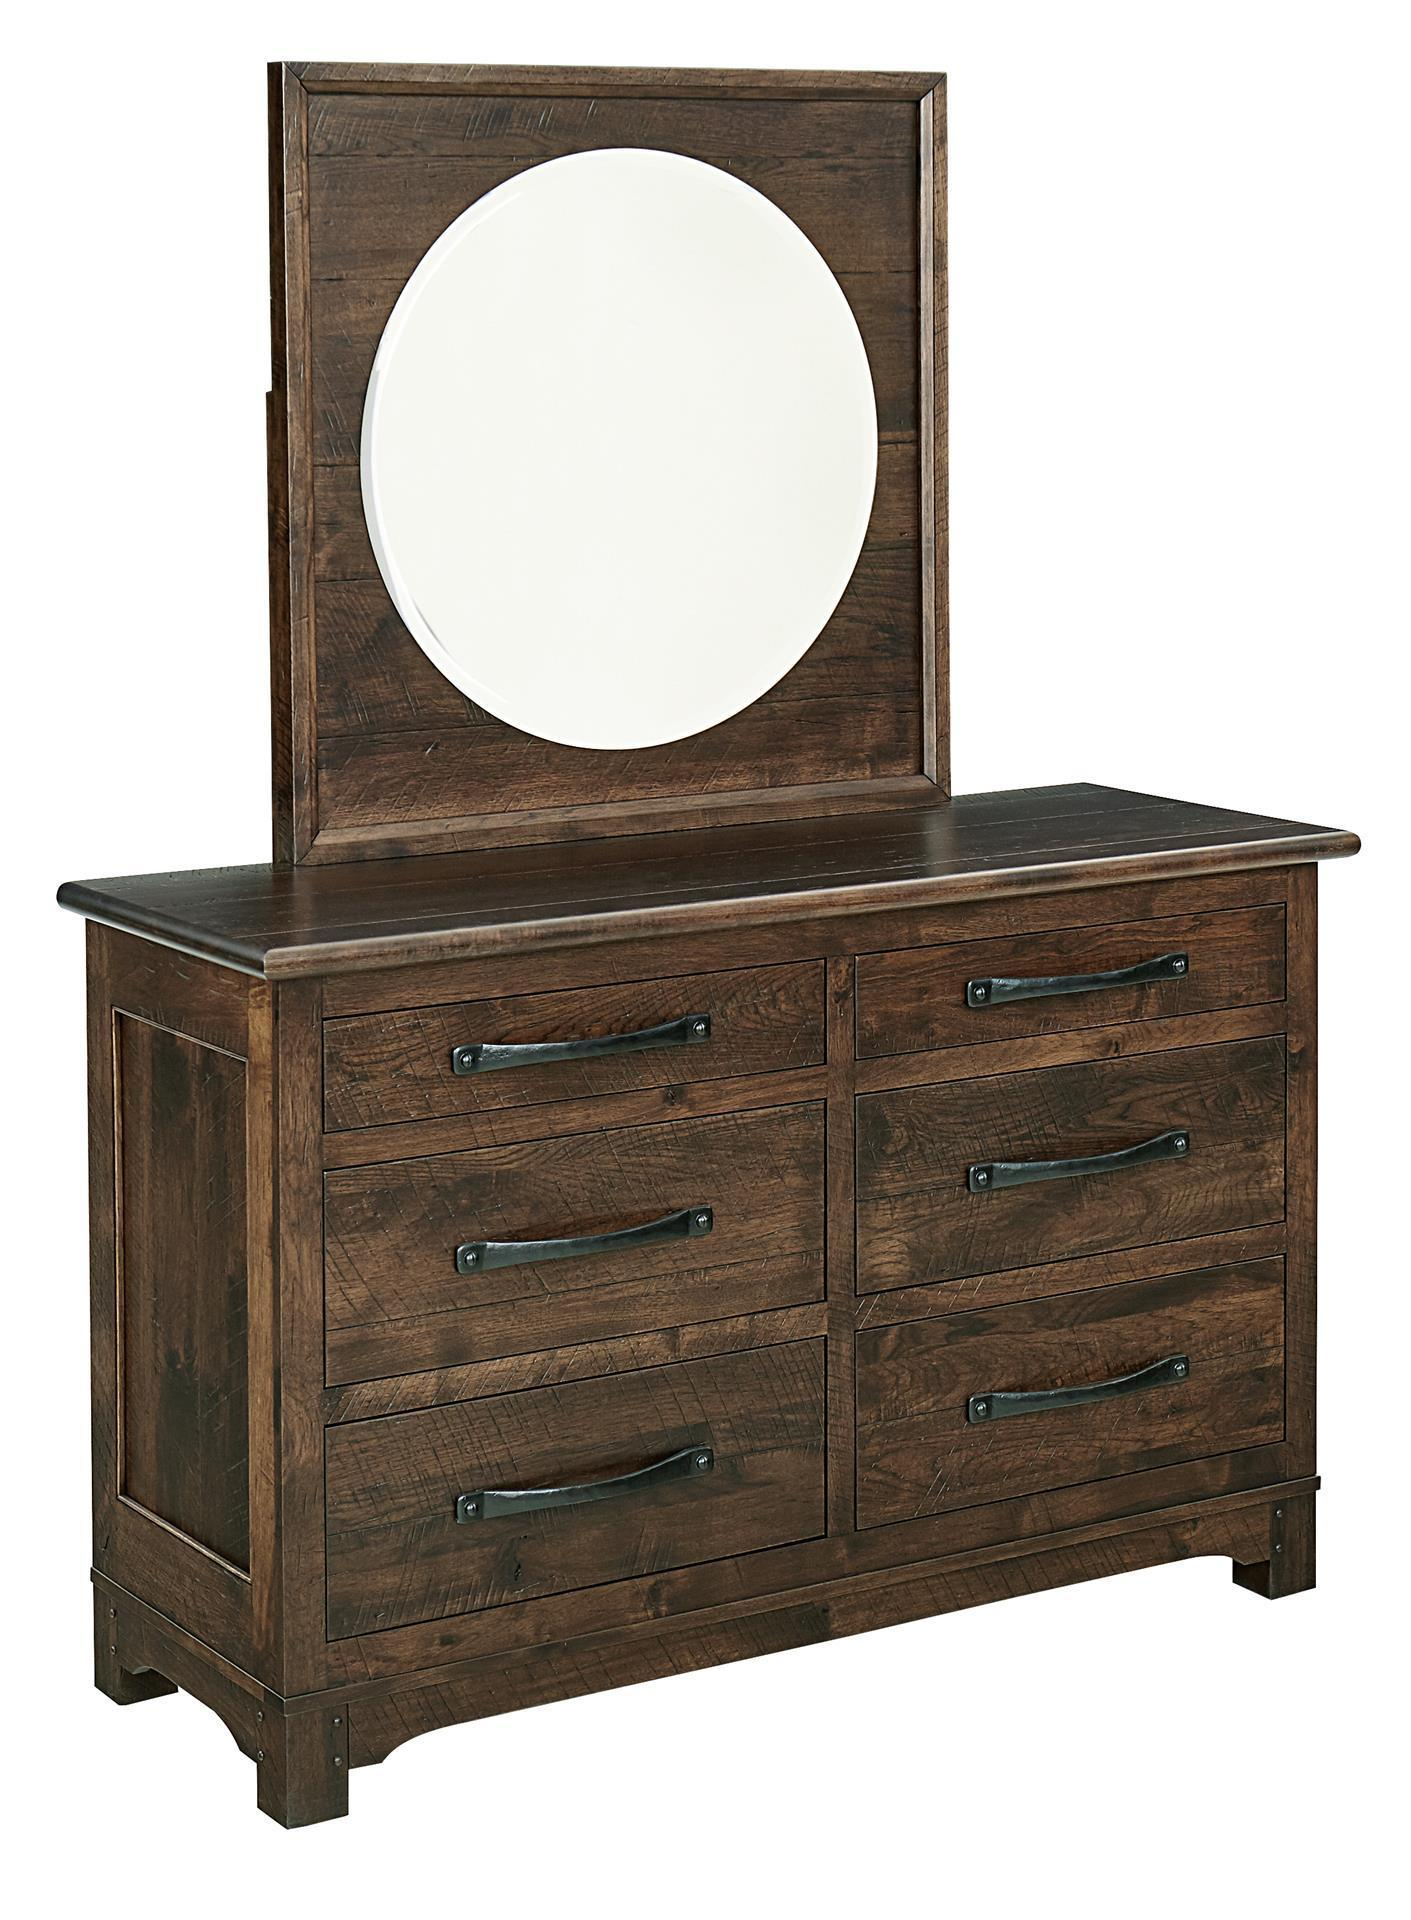 Charlotte Six Drawer Dresser From Dutchcrafters Amish Furniture